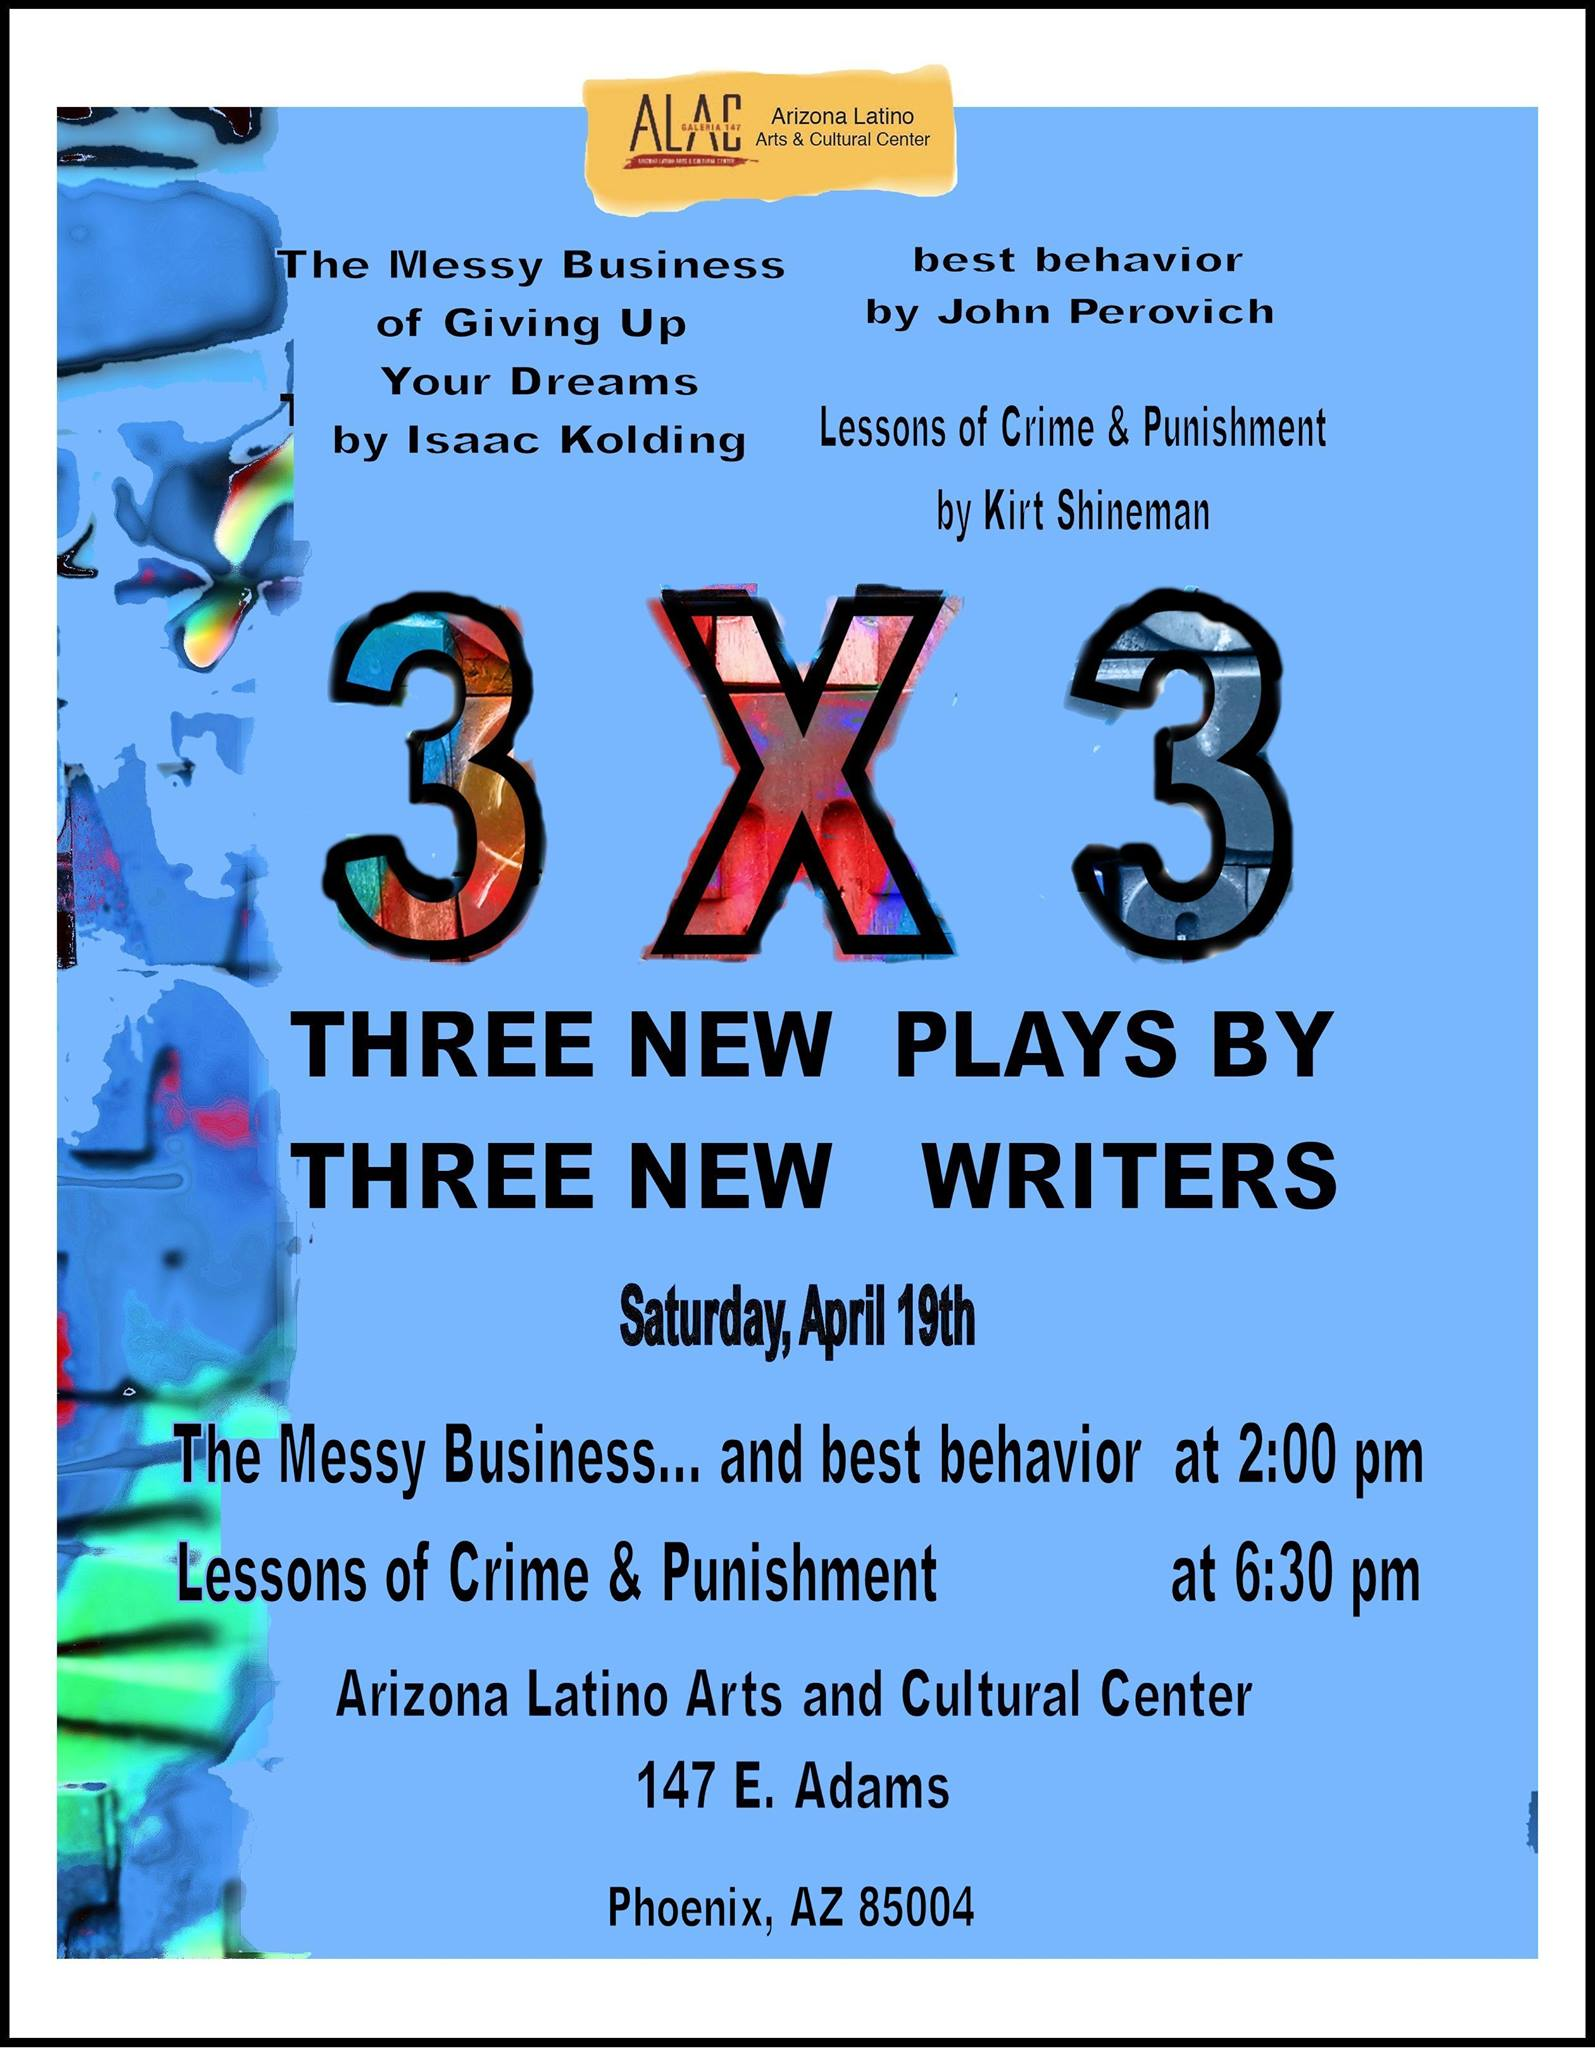 April 19, 2014 A poster for 3 x 3, an afternoon and evening of plays at the Arizona Latino Arts & Cultural Center.